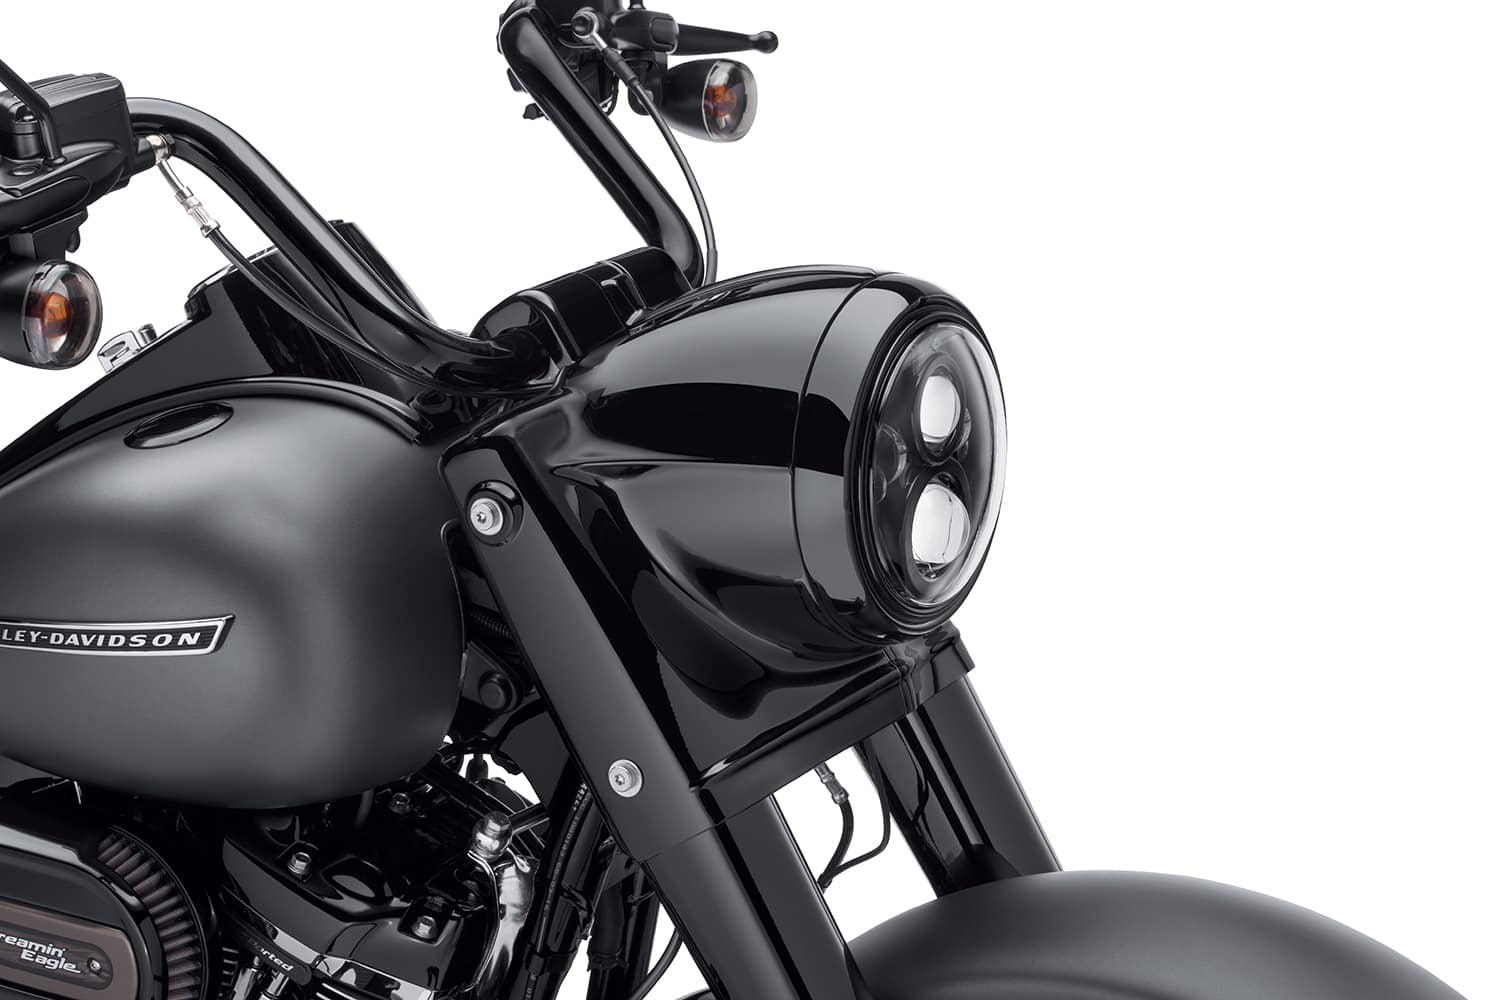 Customize Your Bike at a Harley Dealer in Las Vegas